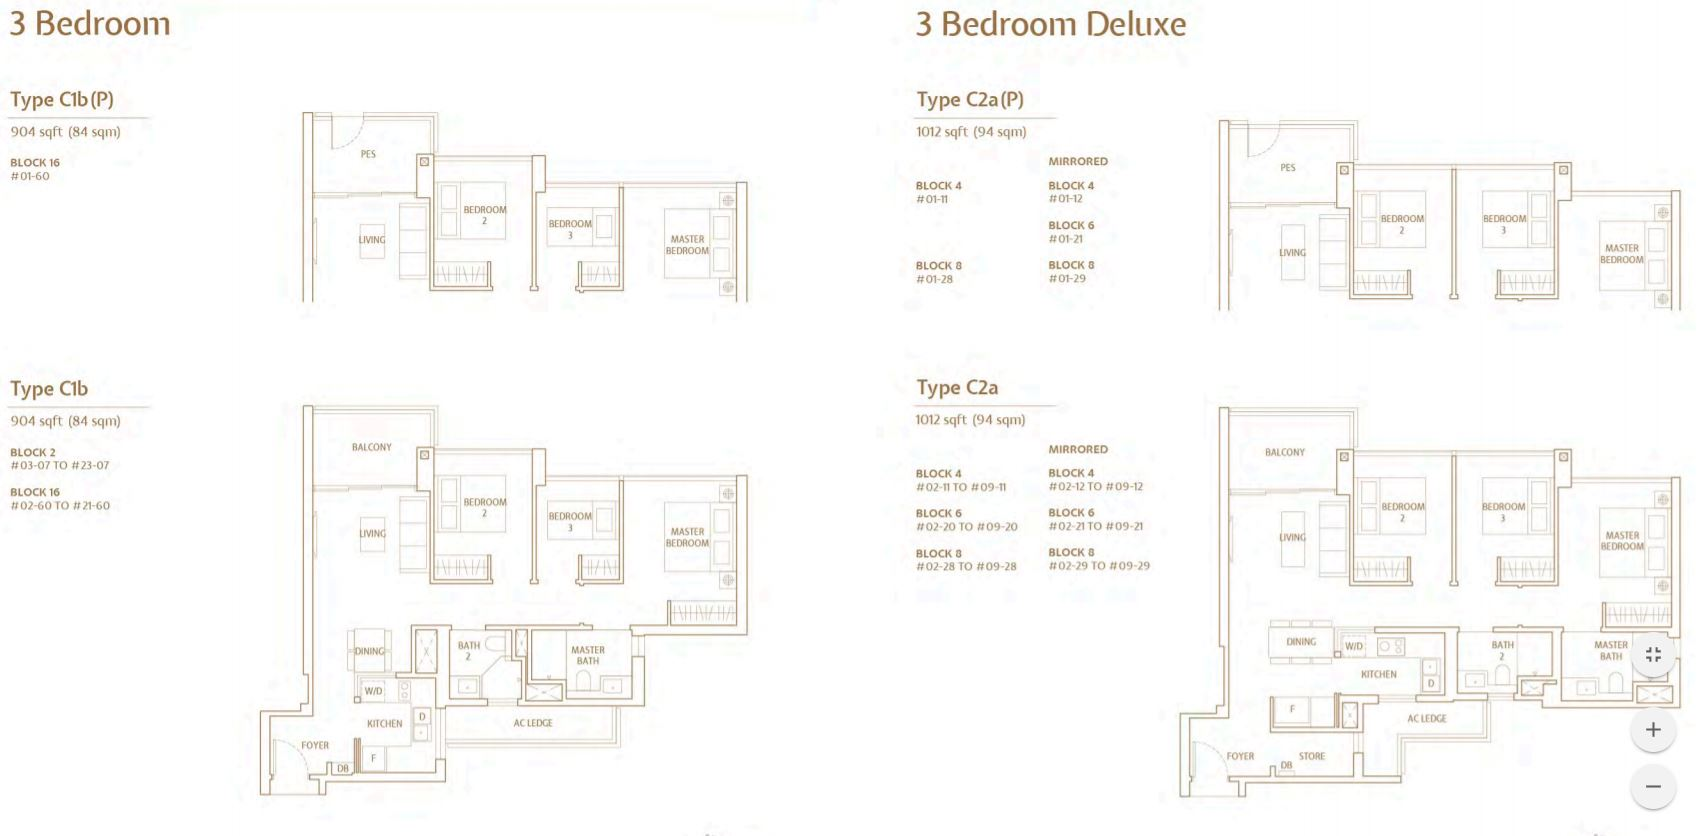 FloorPlan 3 Bedroom-DeLuxe